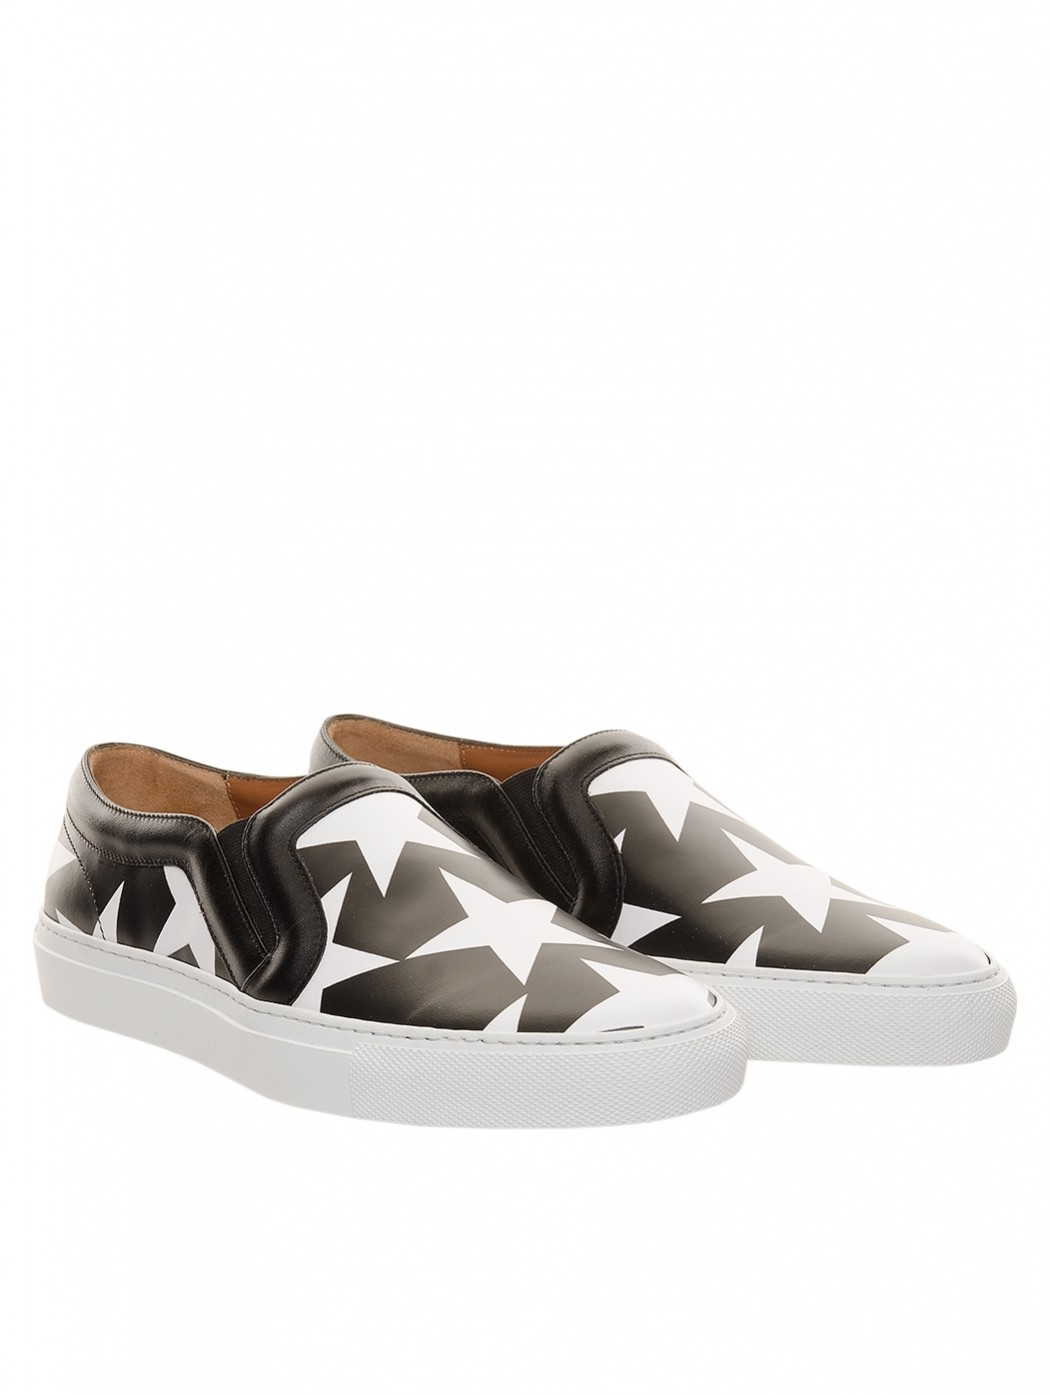 GIVENCHY SLIP ON